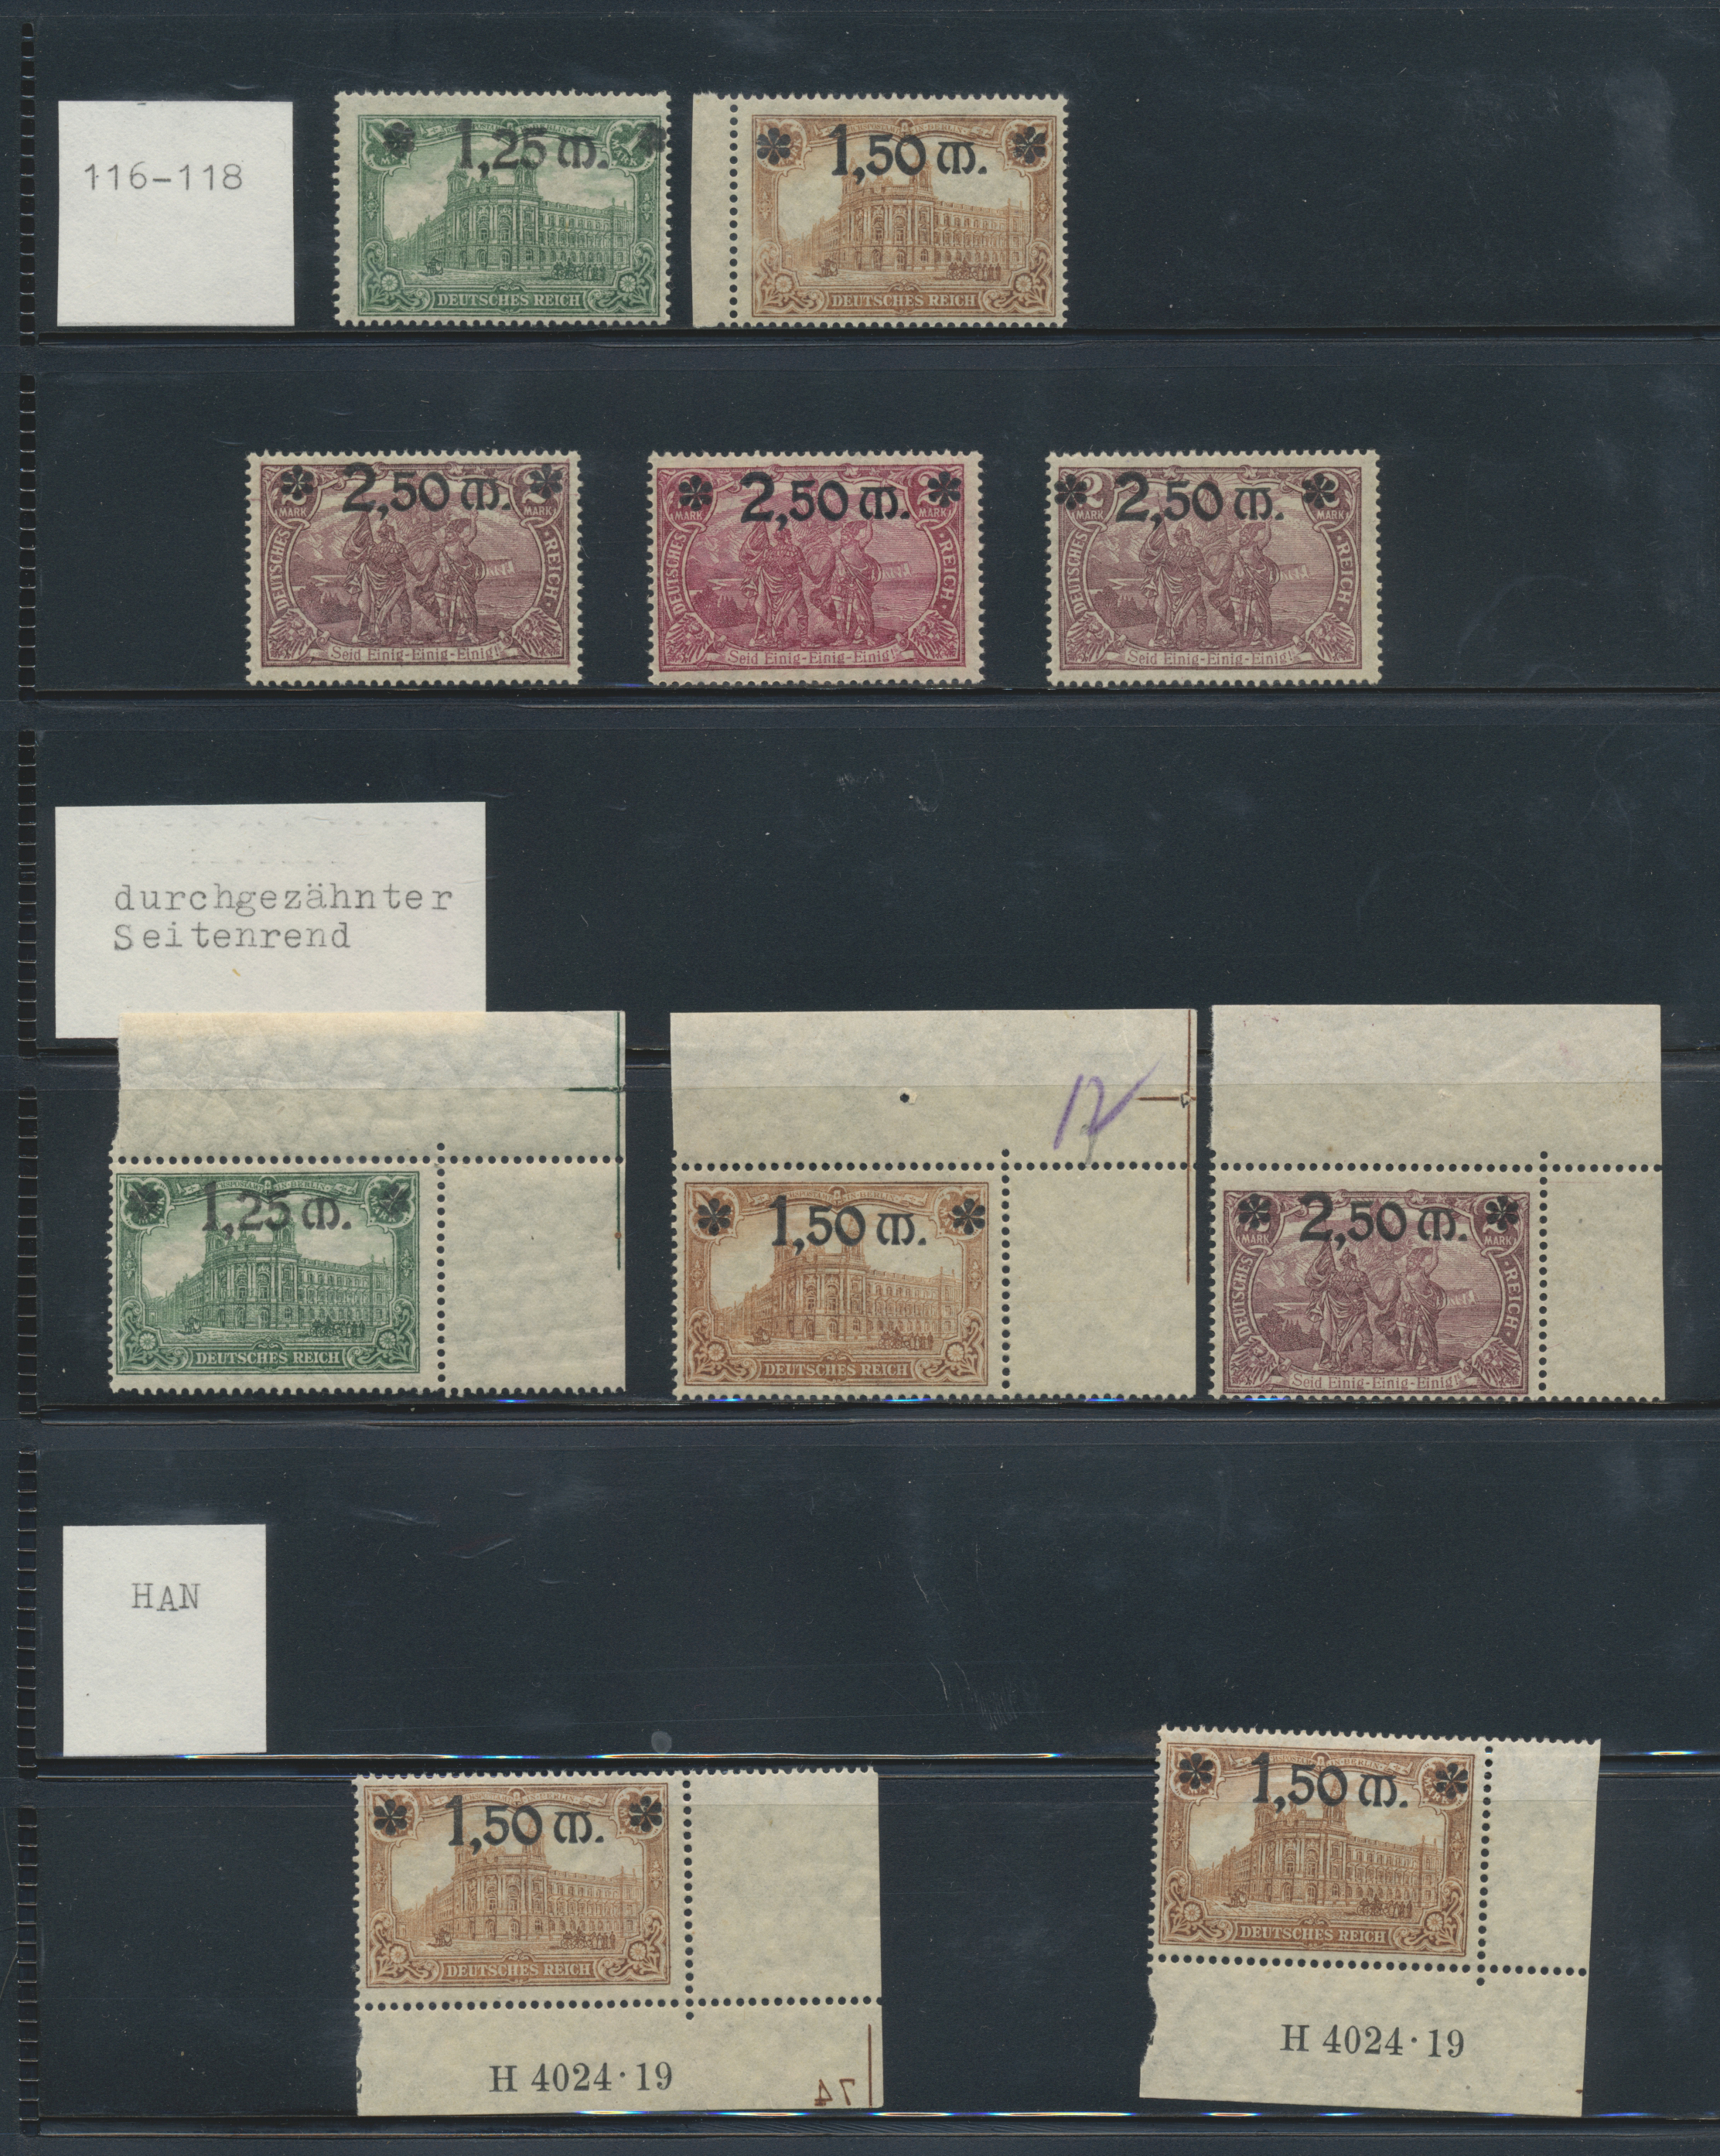 Lot 36625 - Deutsches Reich - Inflation  -  Auktionshaus Christoph Gärtner GmbH & Co. KG Sale #44 Collections Germany